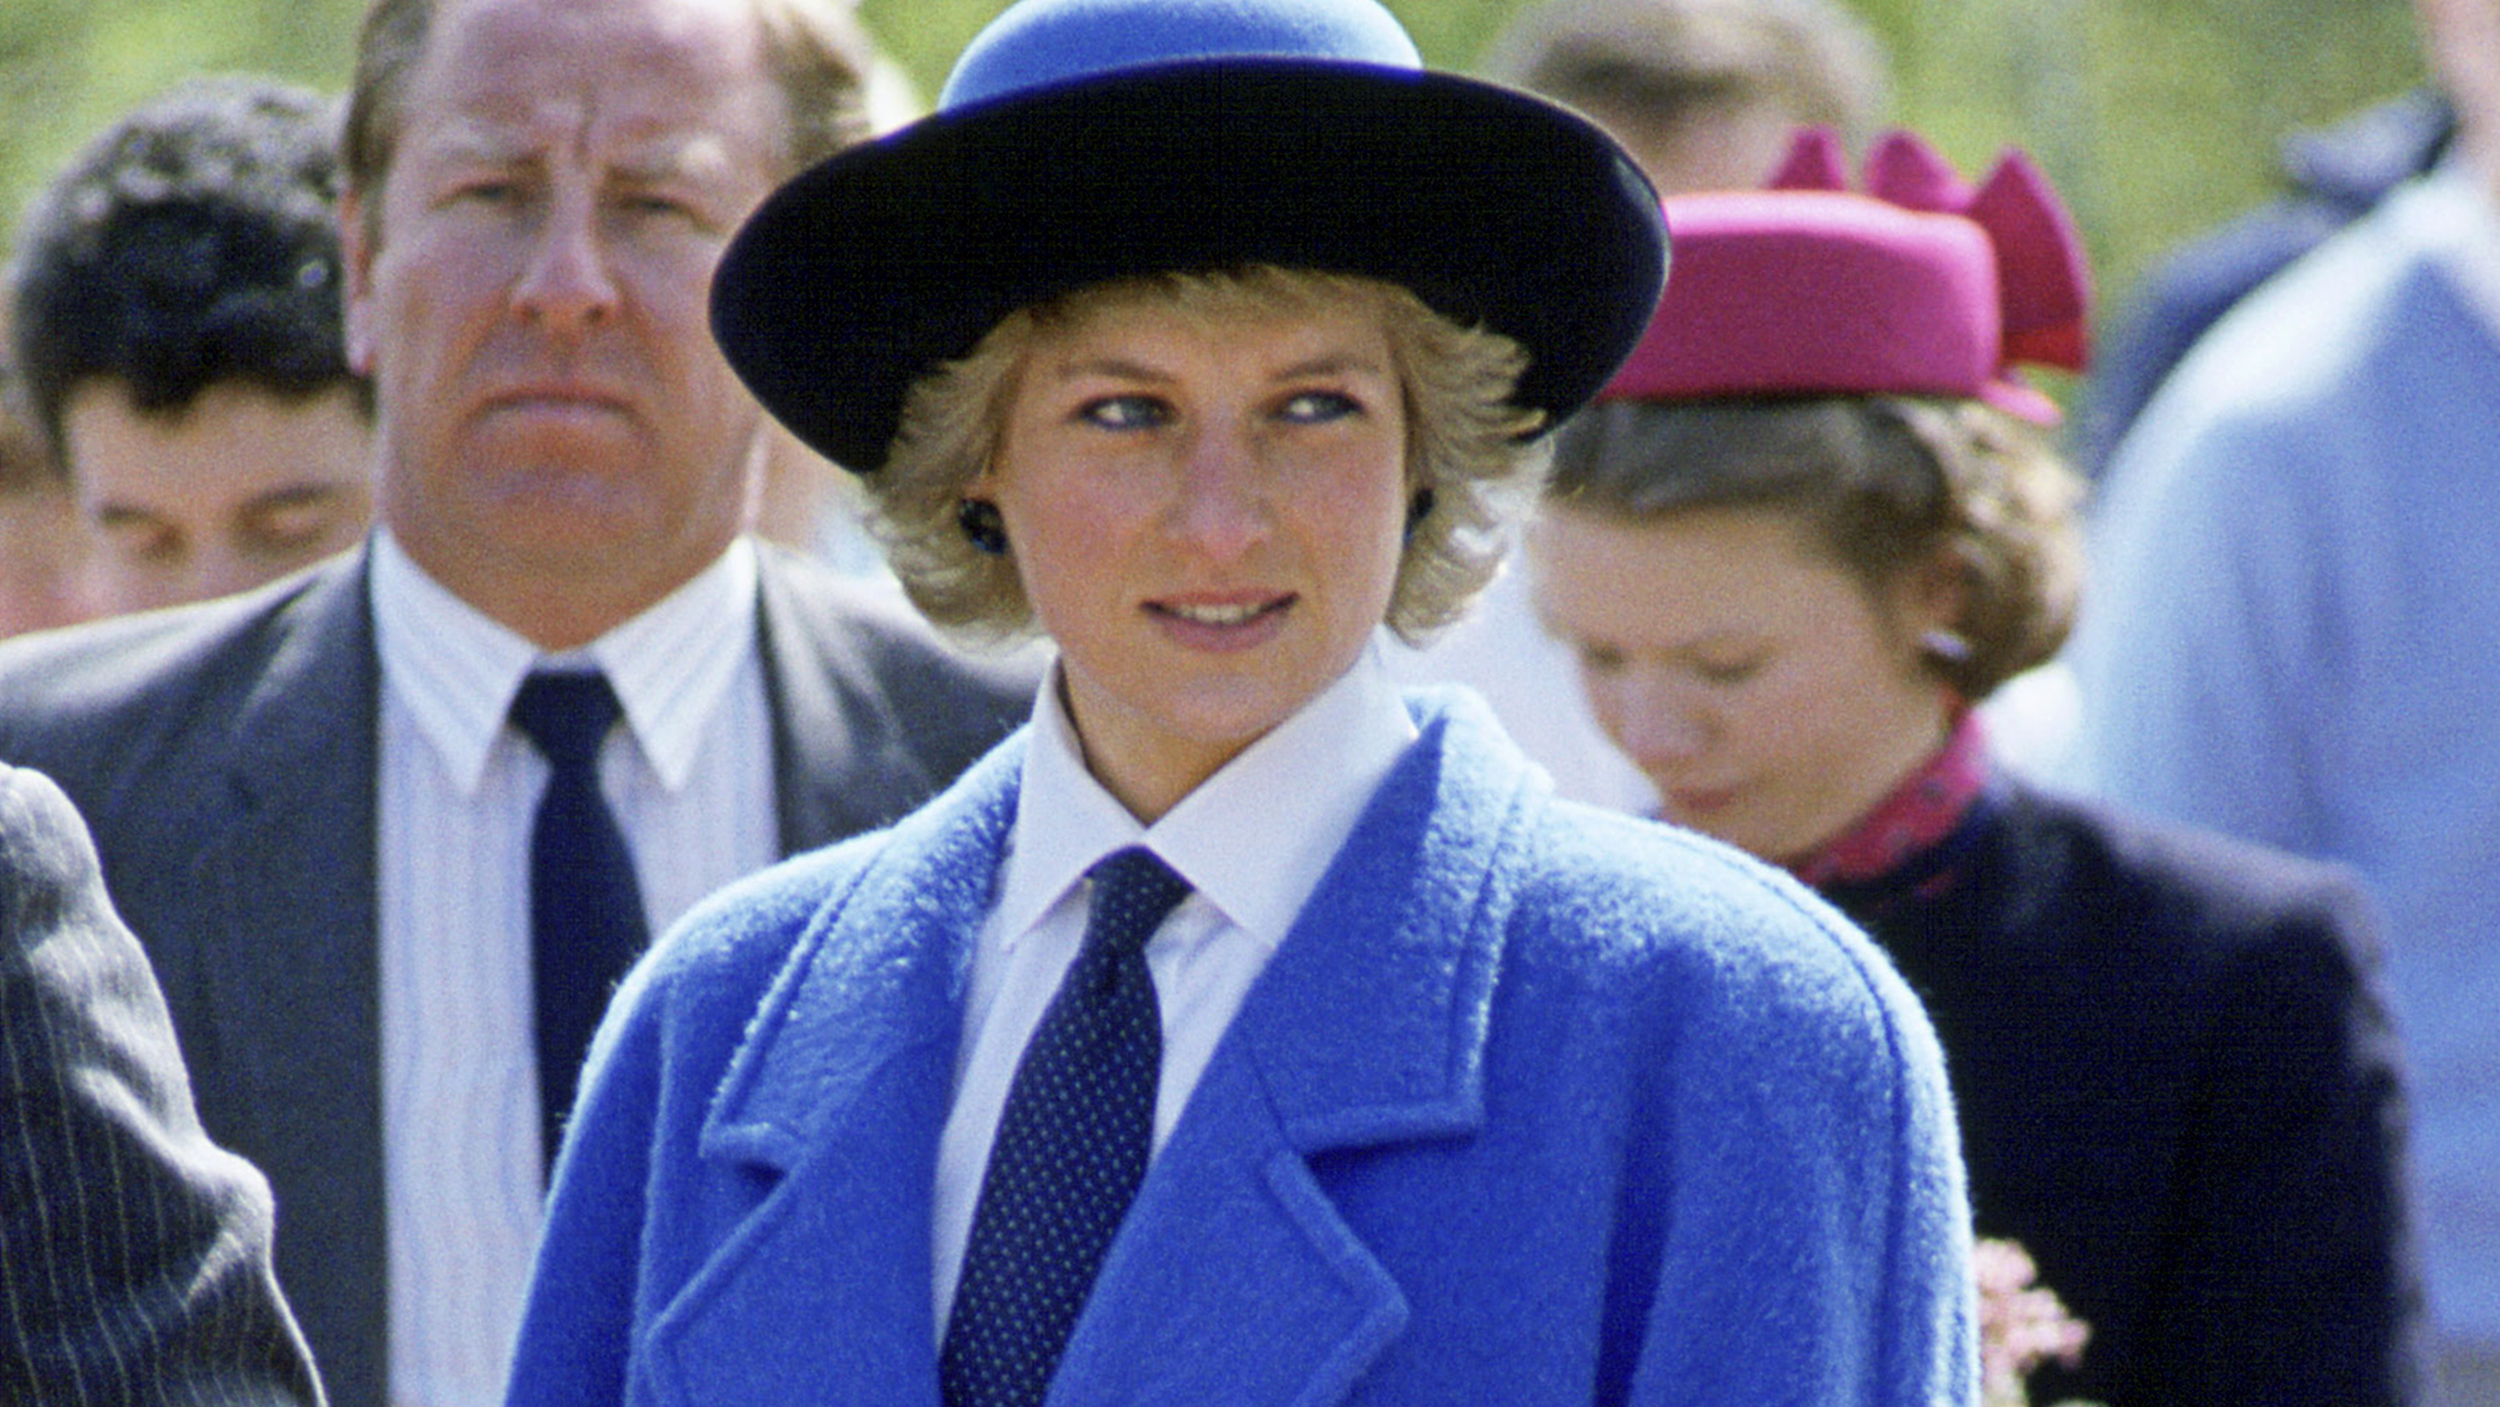 princess-diana-blue-coat-today-170111-tease_67fb50a5d74e0638f9044c8f0ad34ab0.jpg